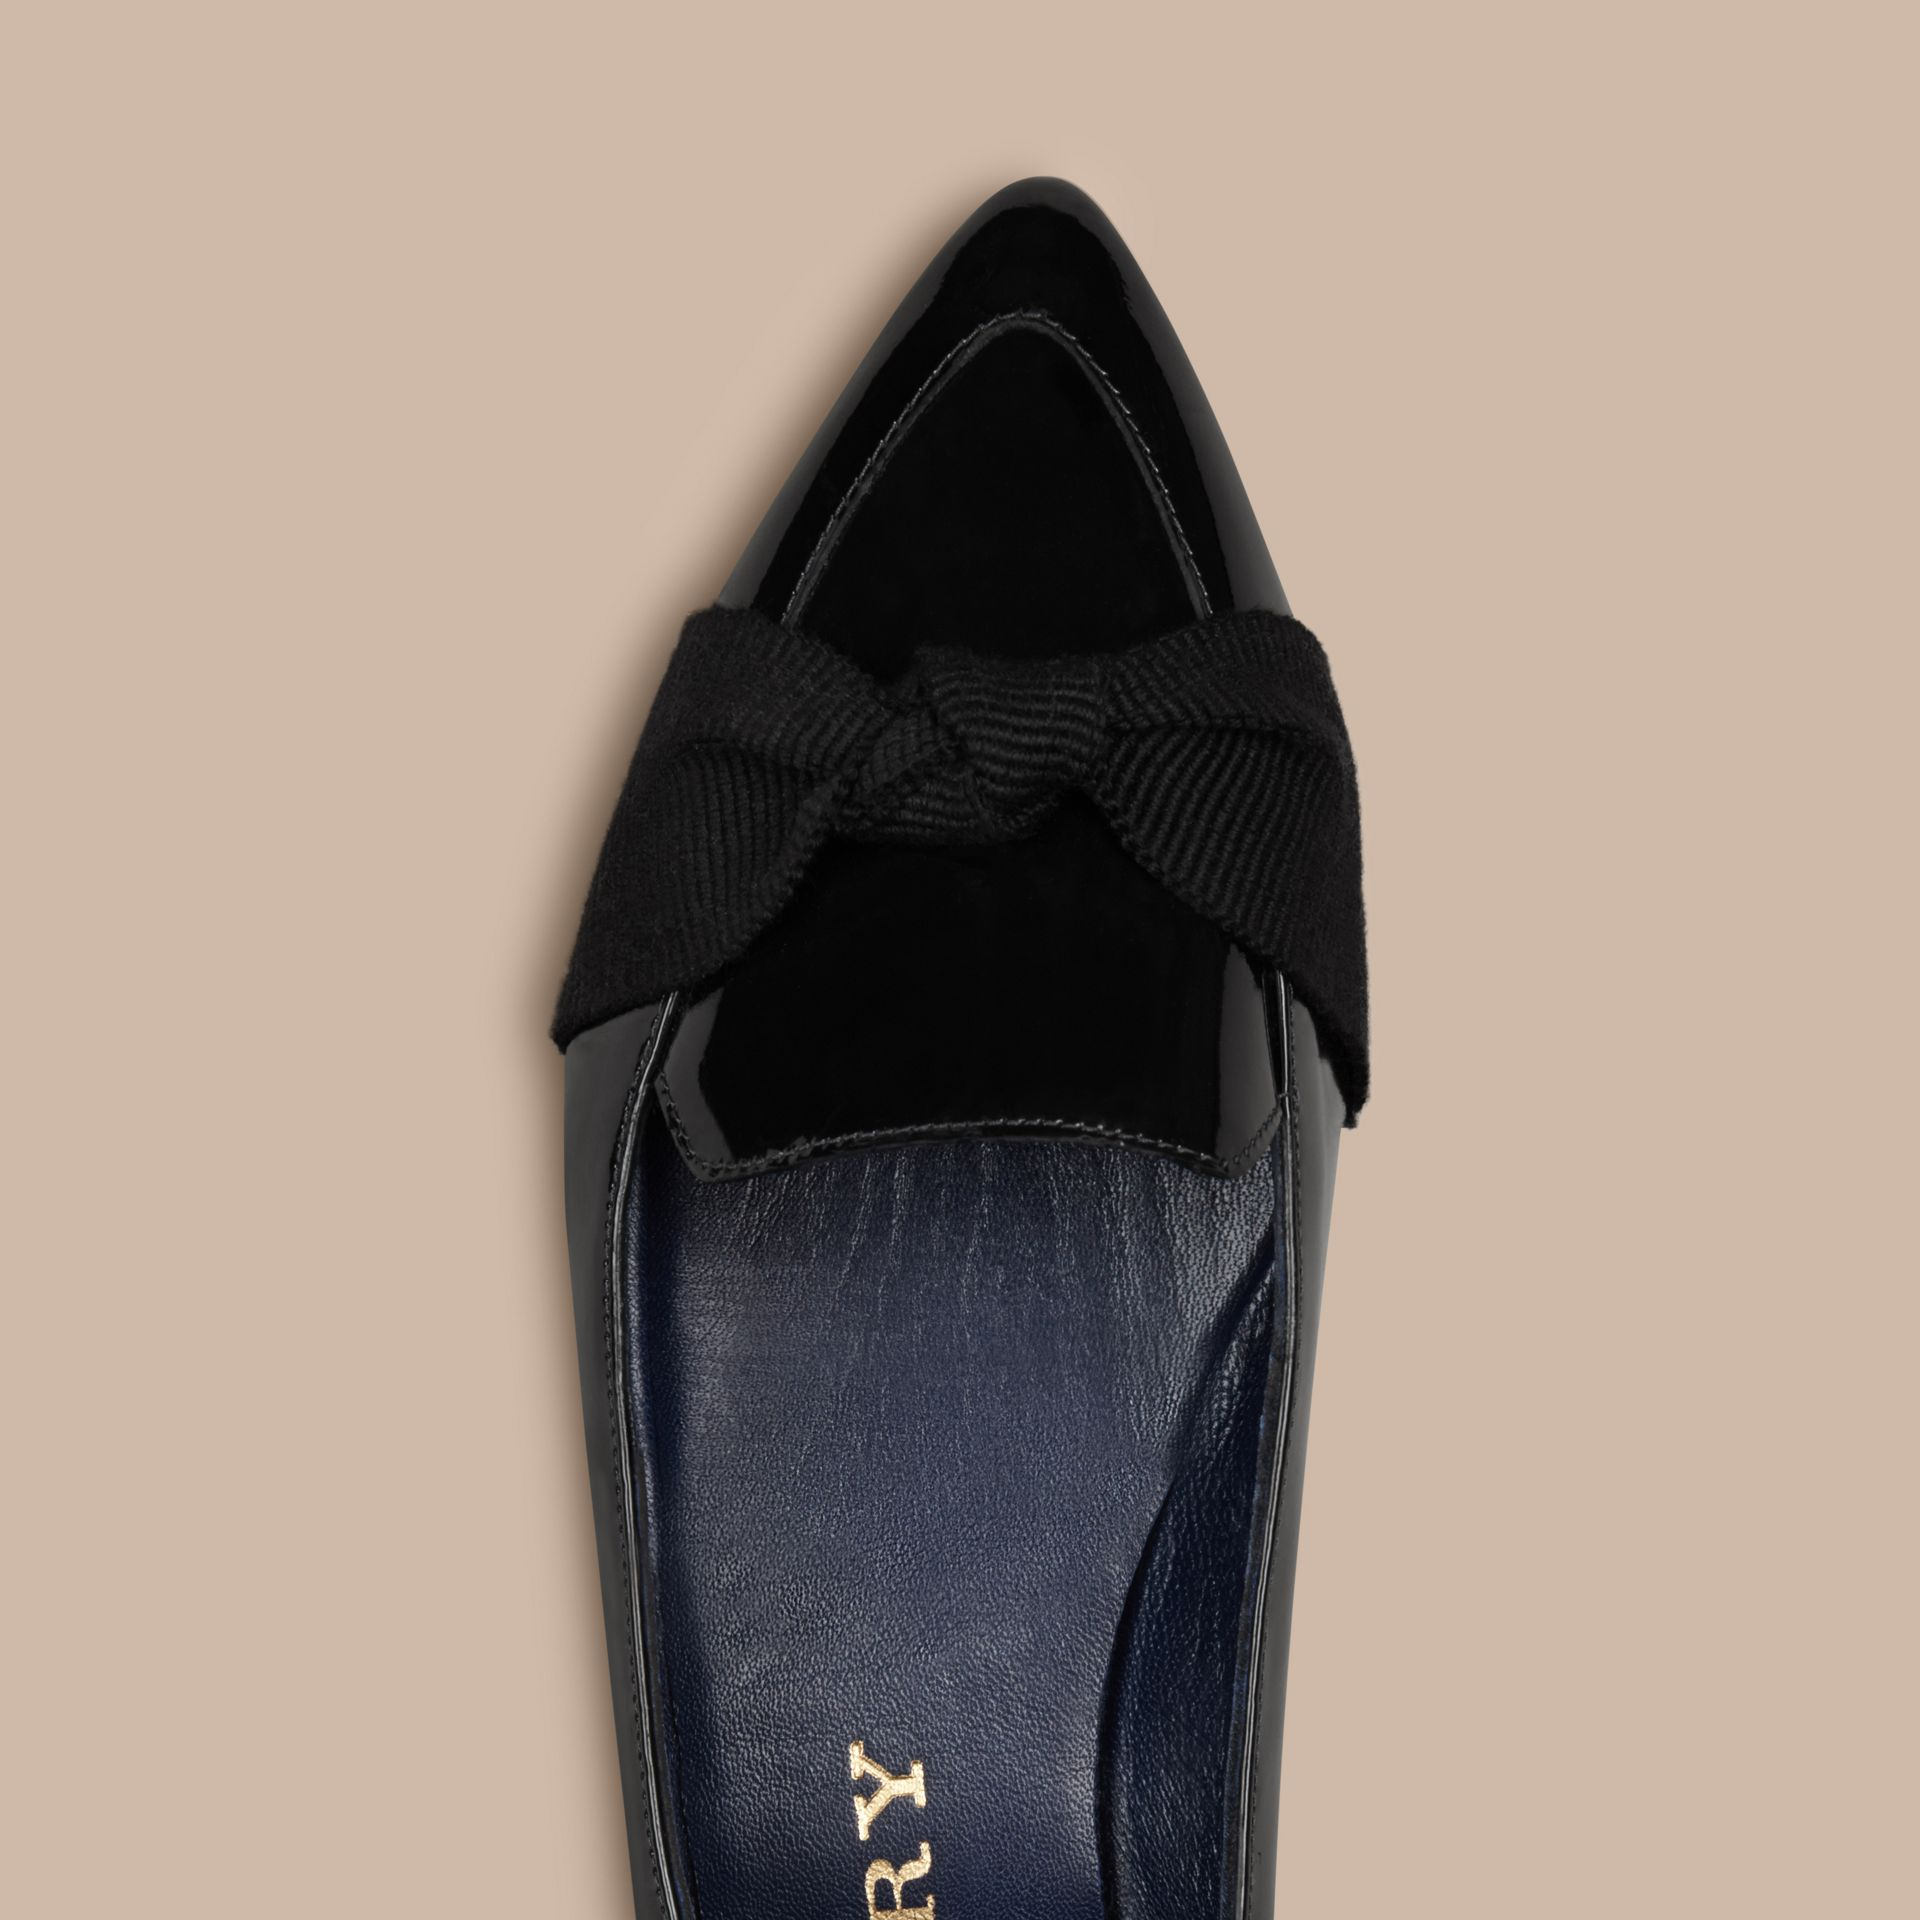 Navy Patent Leather Loafers with Grosgrain Bow Navy - gallery image 5